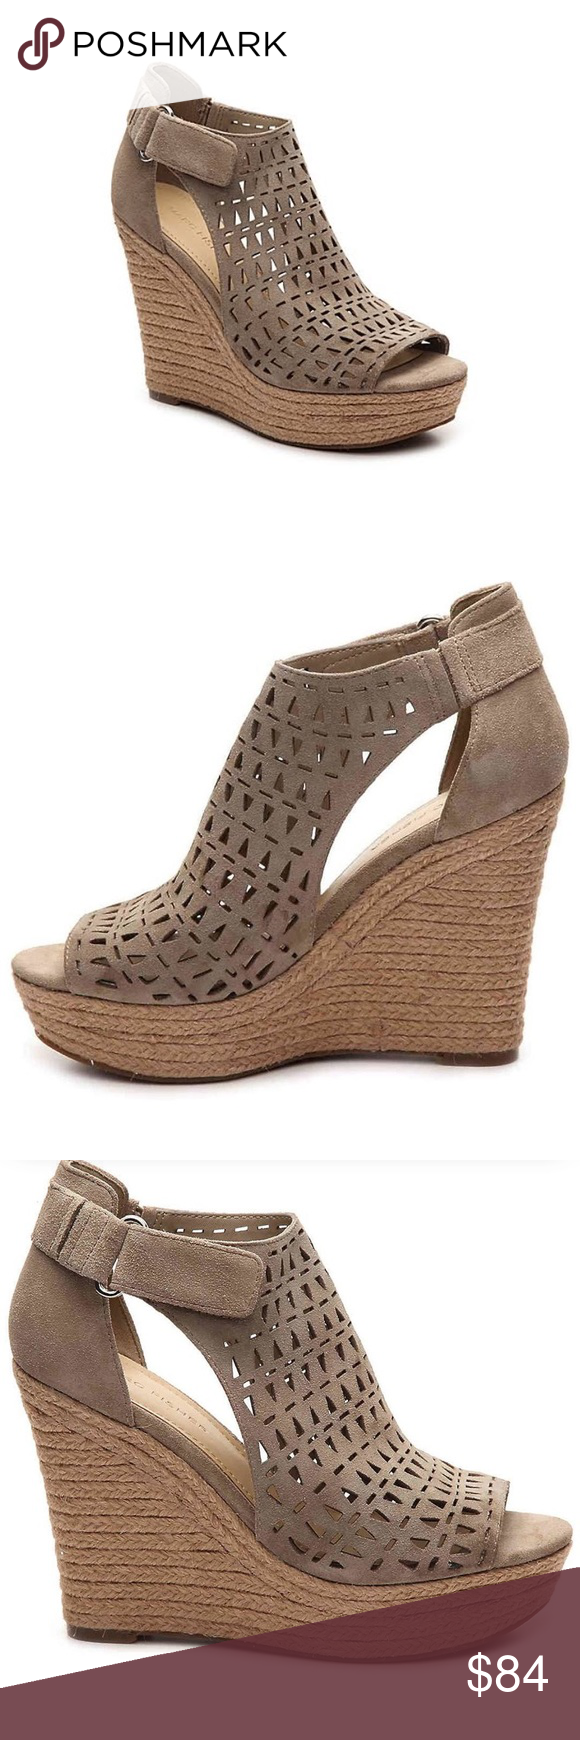 8015b48291d NWOB Marc Fisher Helina wedge sandal taupe sz 8 NWOB Marc Fisher Helina  wedge espadrille sandal taupe sz 8. The Helina is an espadrille wedge suede  sandal ...